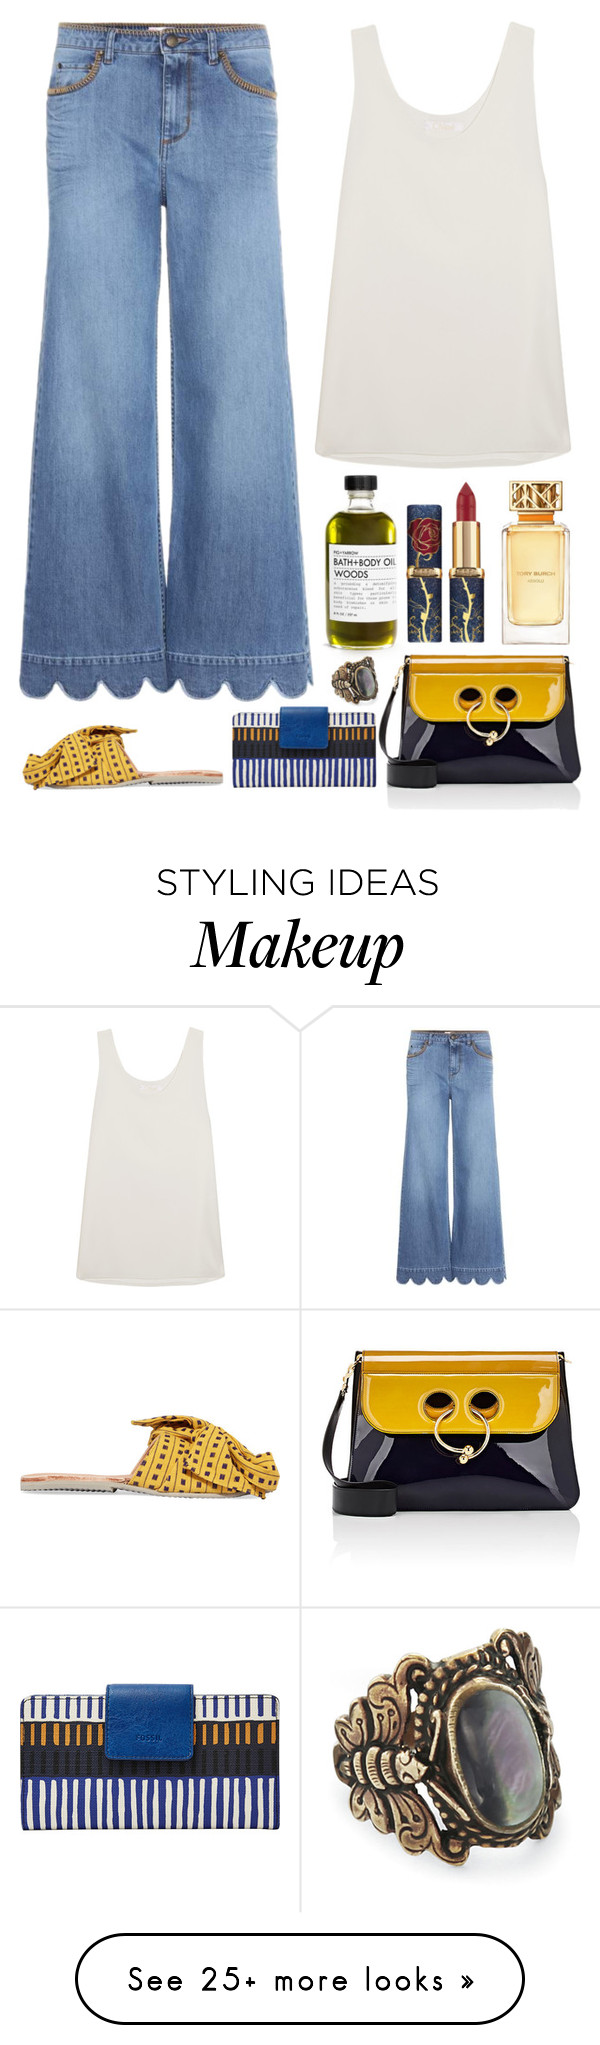 """""""5.622"""" by katrina-yeow on Polyvore featuring Chloé, RED Valentino, Brother Vellies, FOSSIL, J.W. Anderson and Tory Burch"""